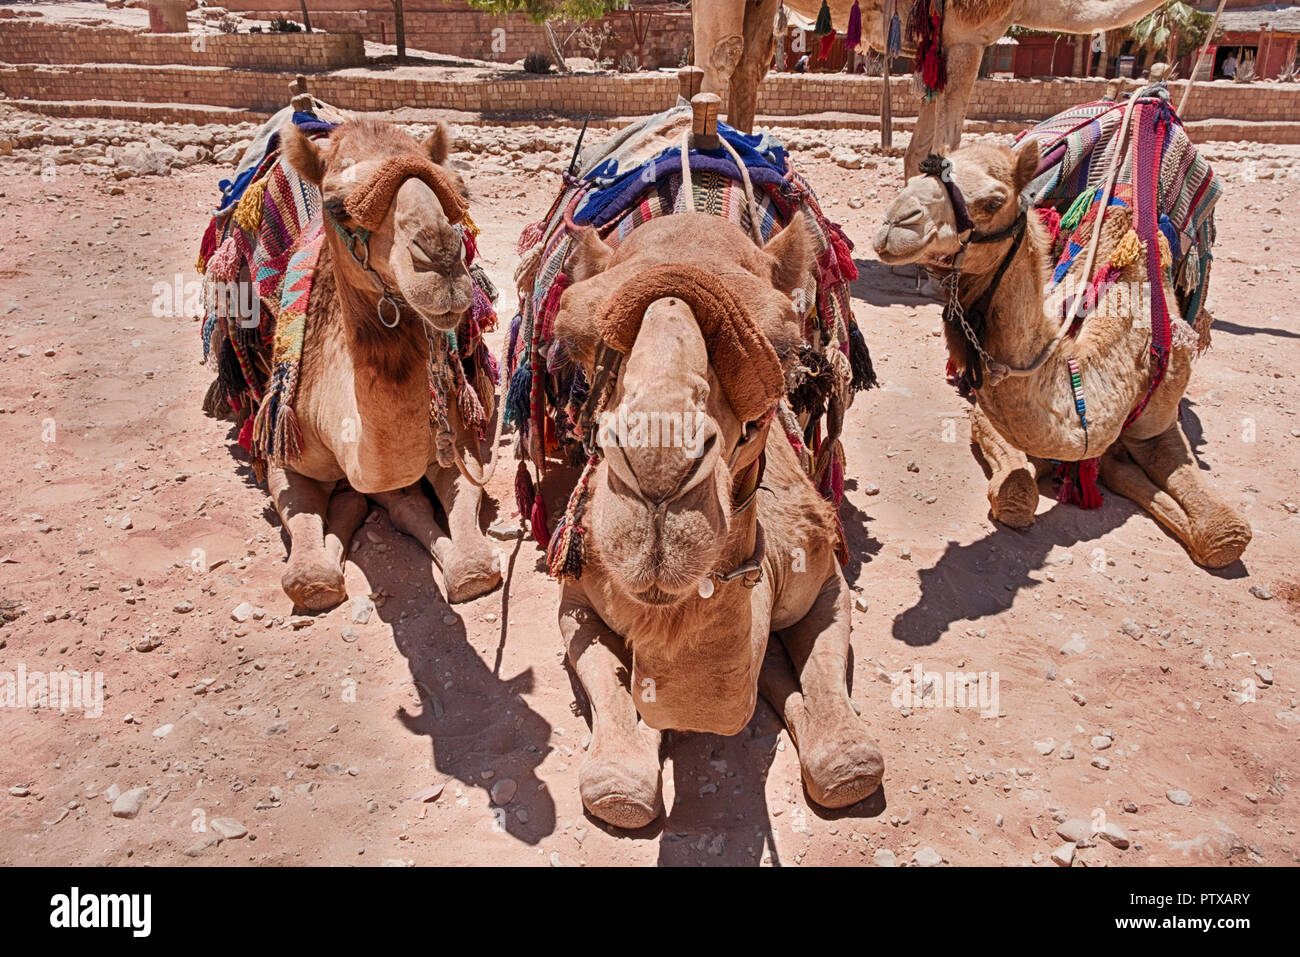 Three camels with saddles and blankets ready for tourists are close-up and staring directly at the camera. - Stock Image